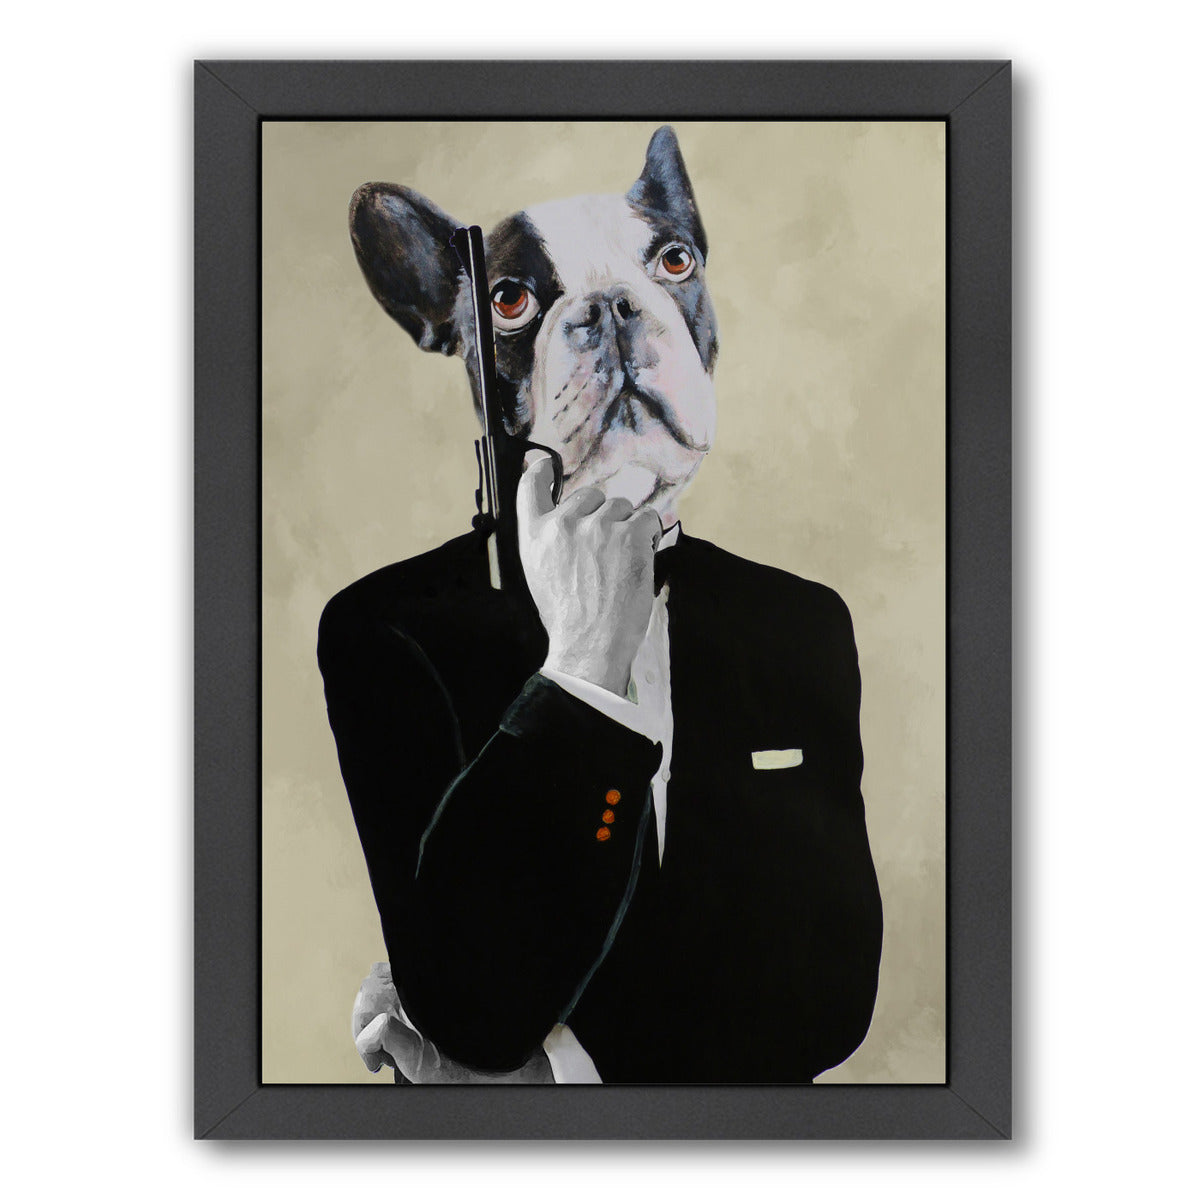 James Bond Bulldog By Coco De Paris - Black Framed Print - Wall Art - Americanflat